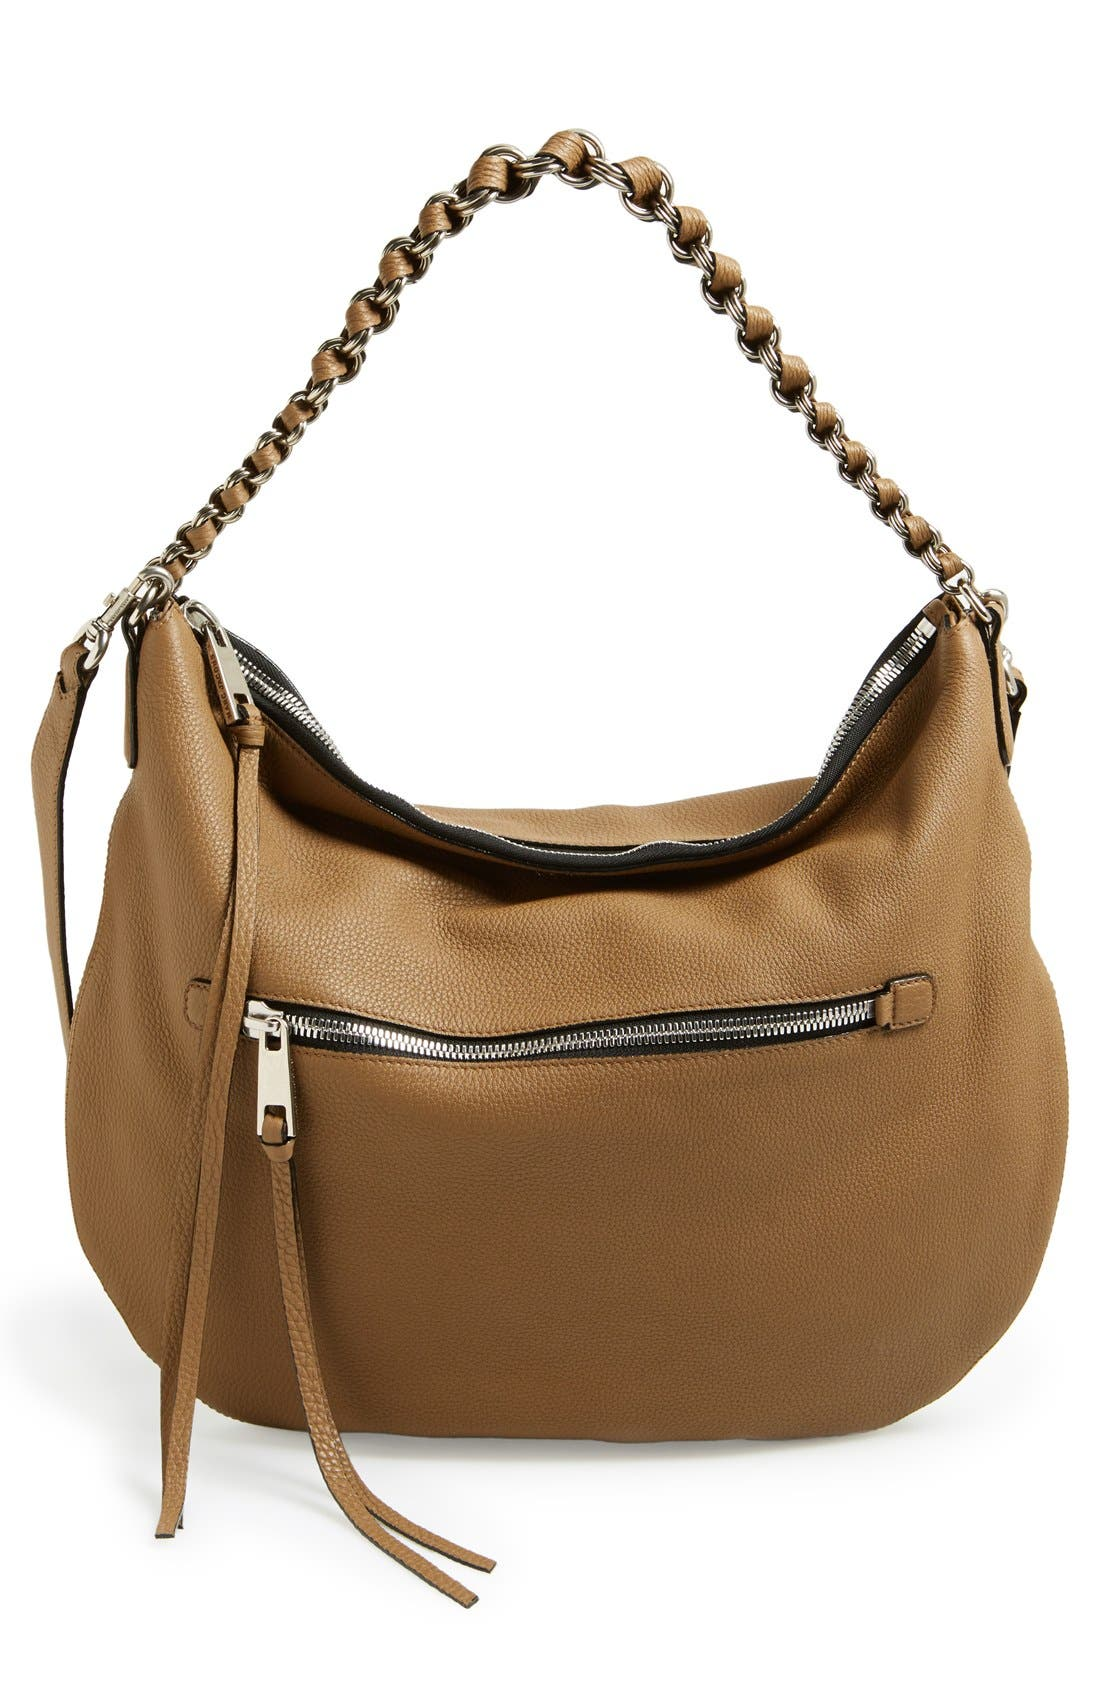 Main Image - MARC JACOBS 'Big Apple Nomad' Calfskin Leather Hobo